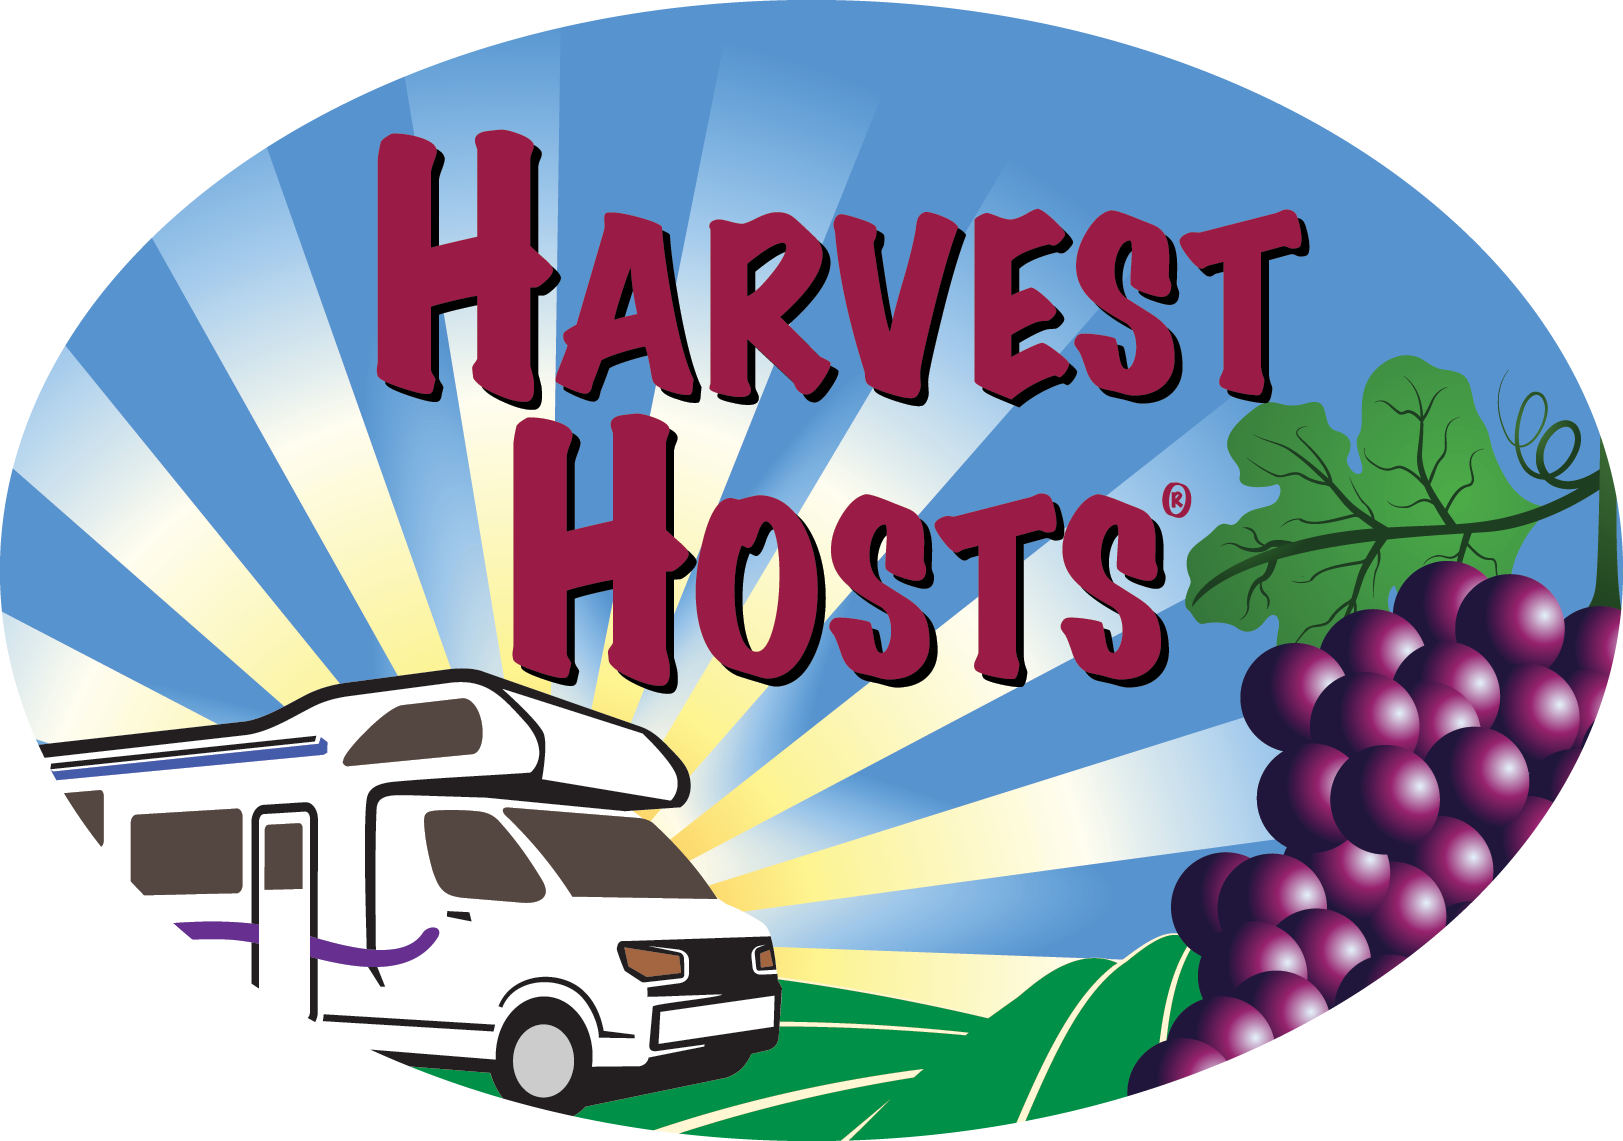 HarvestHosts_logo.png